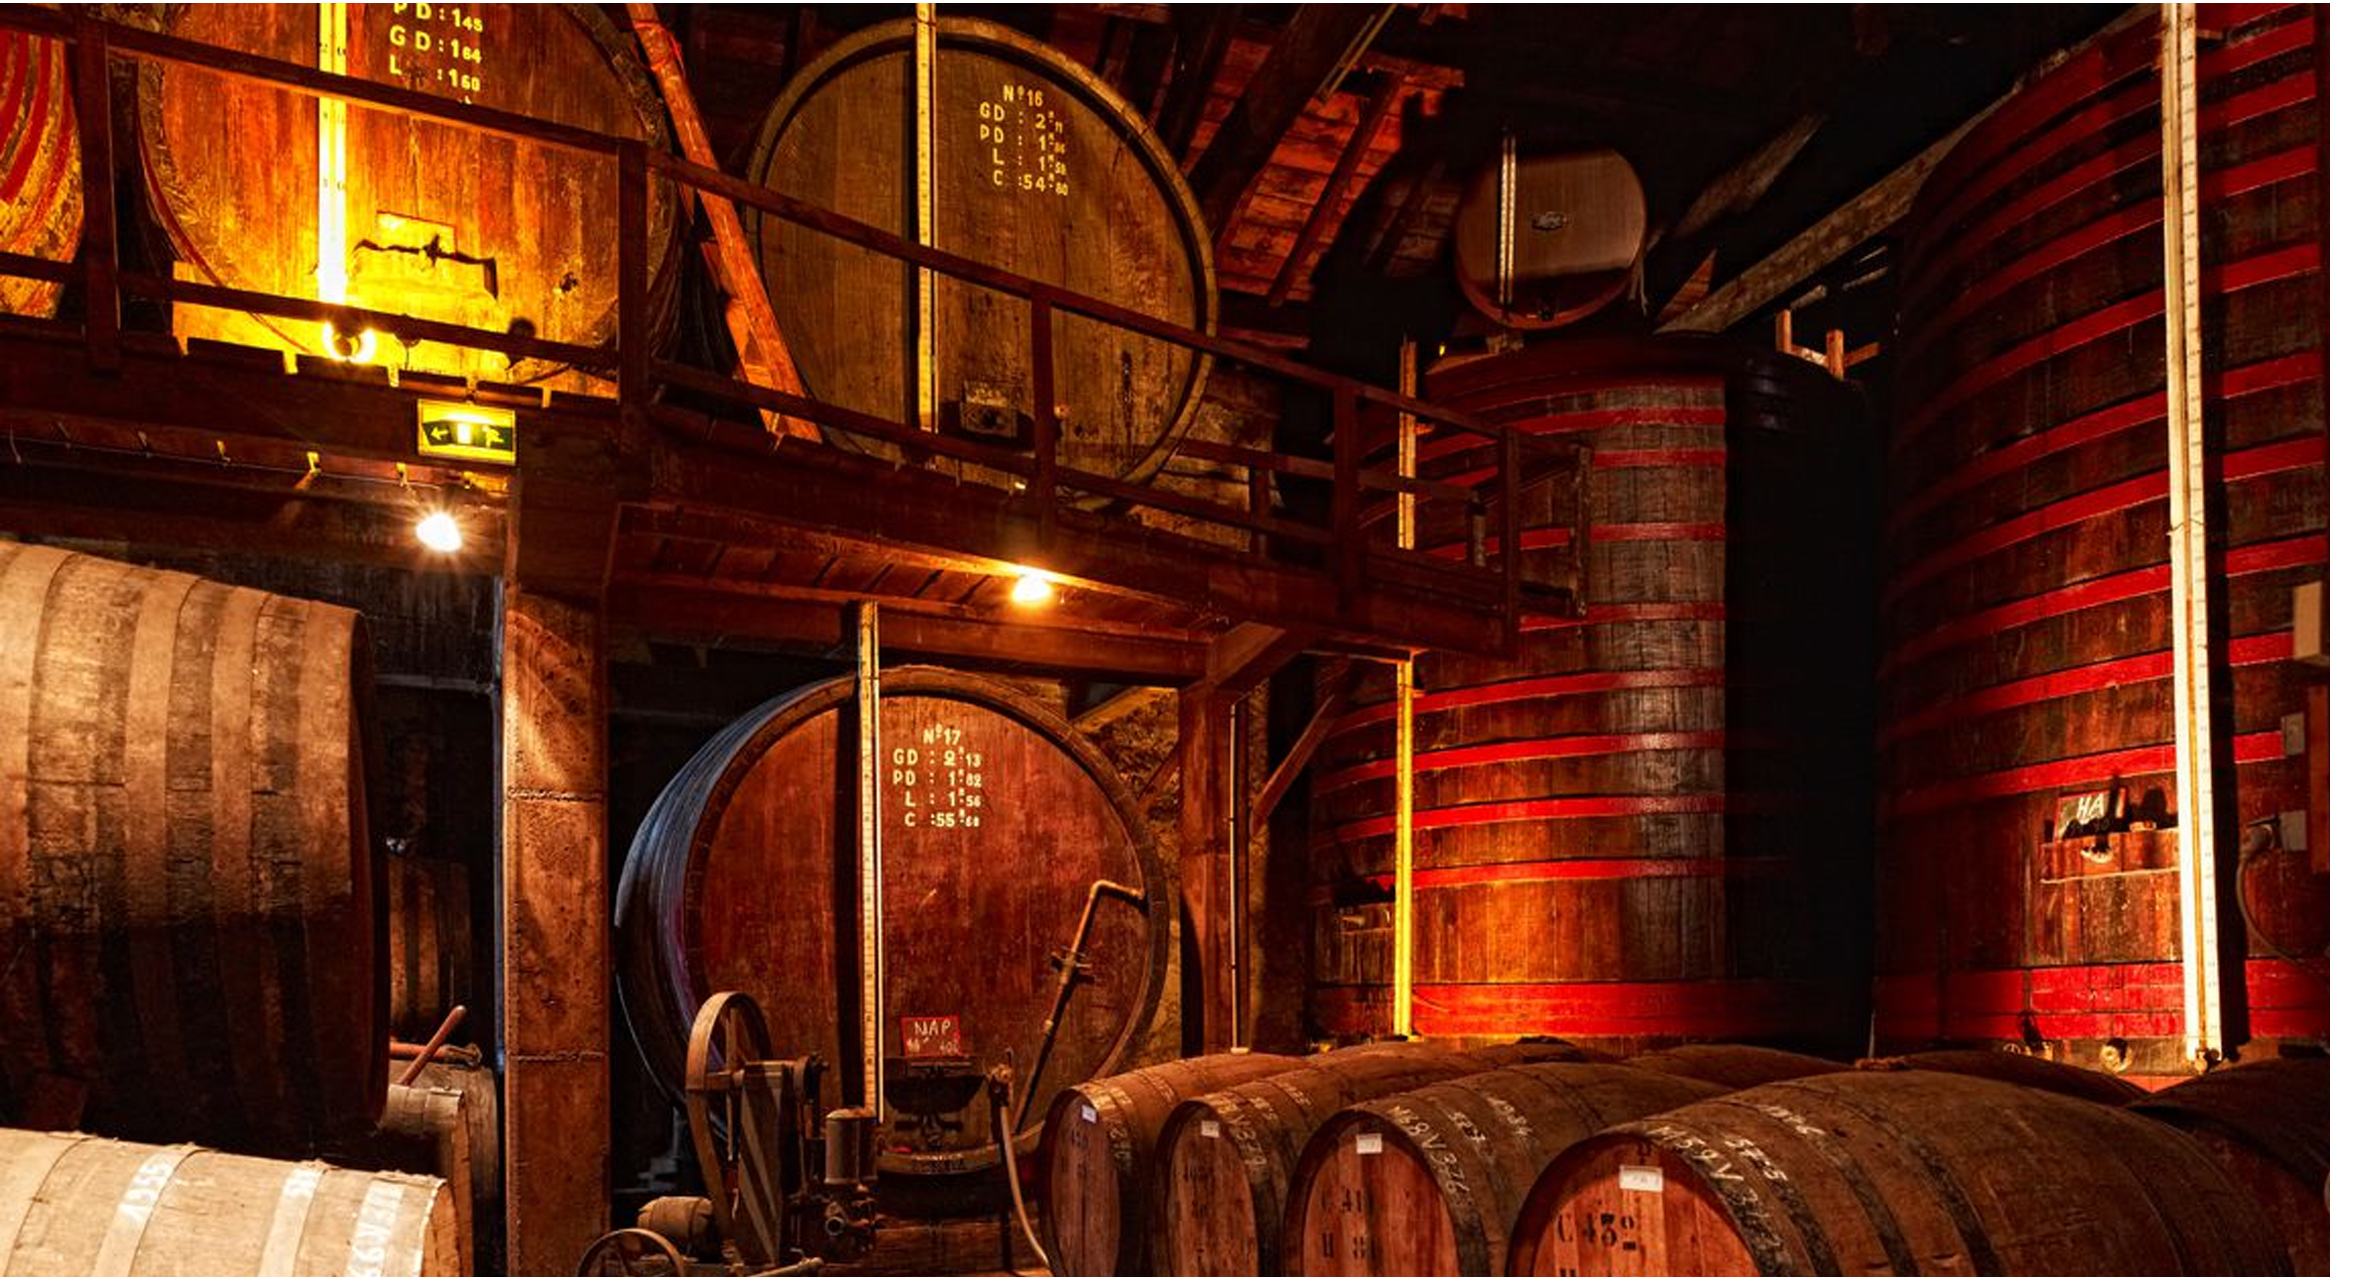 a warm view of our storage room with wooden barrels of spirits